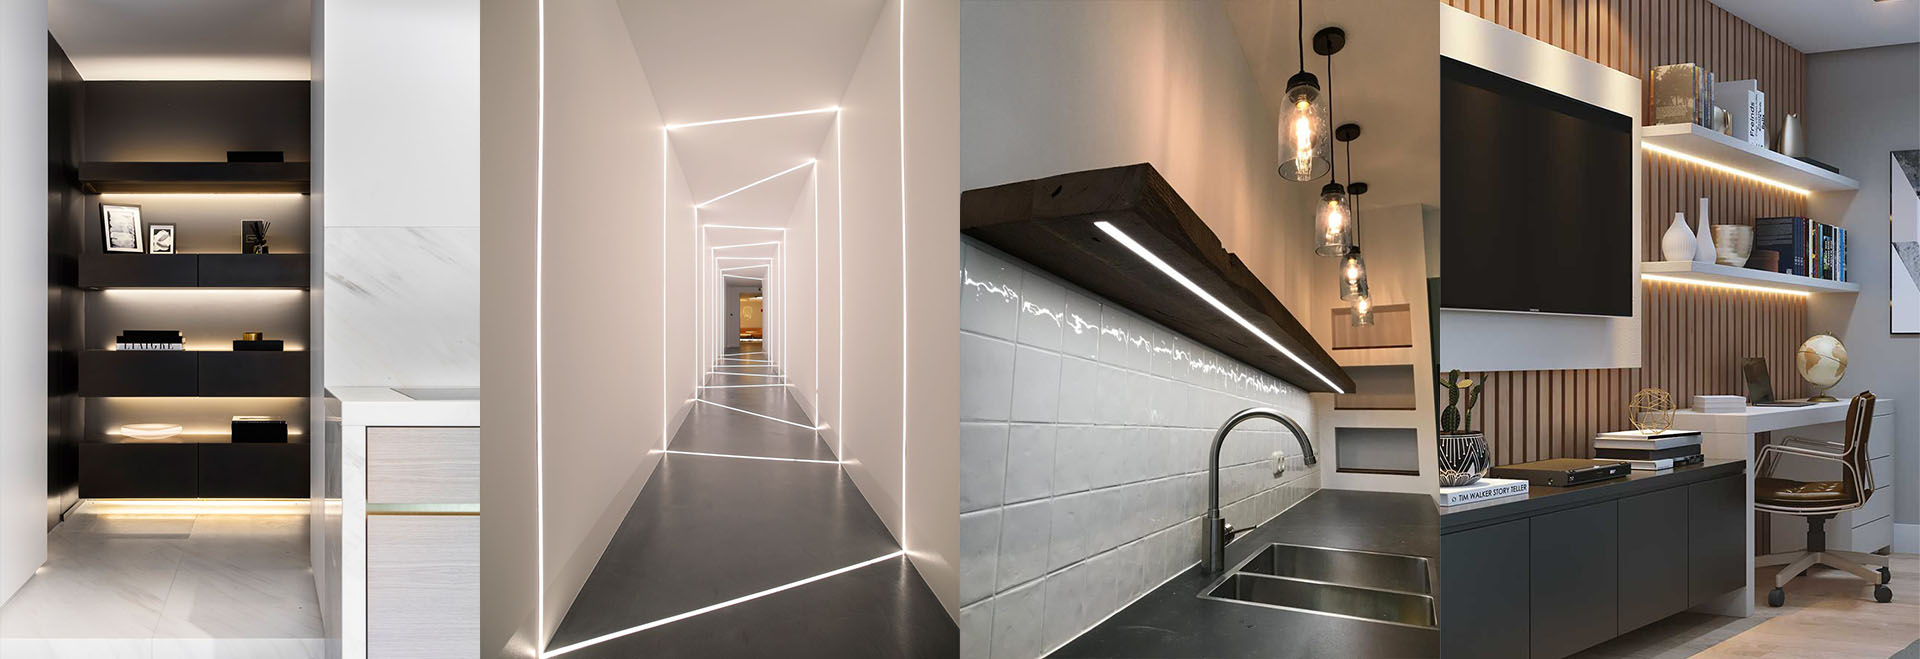 Application of LED strip profile